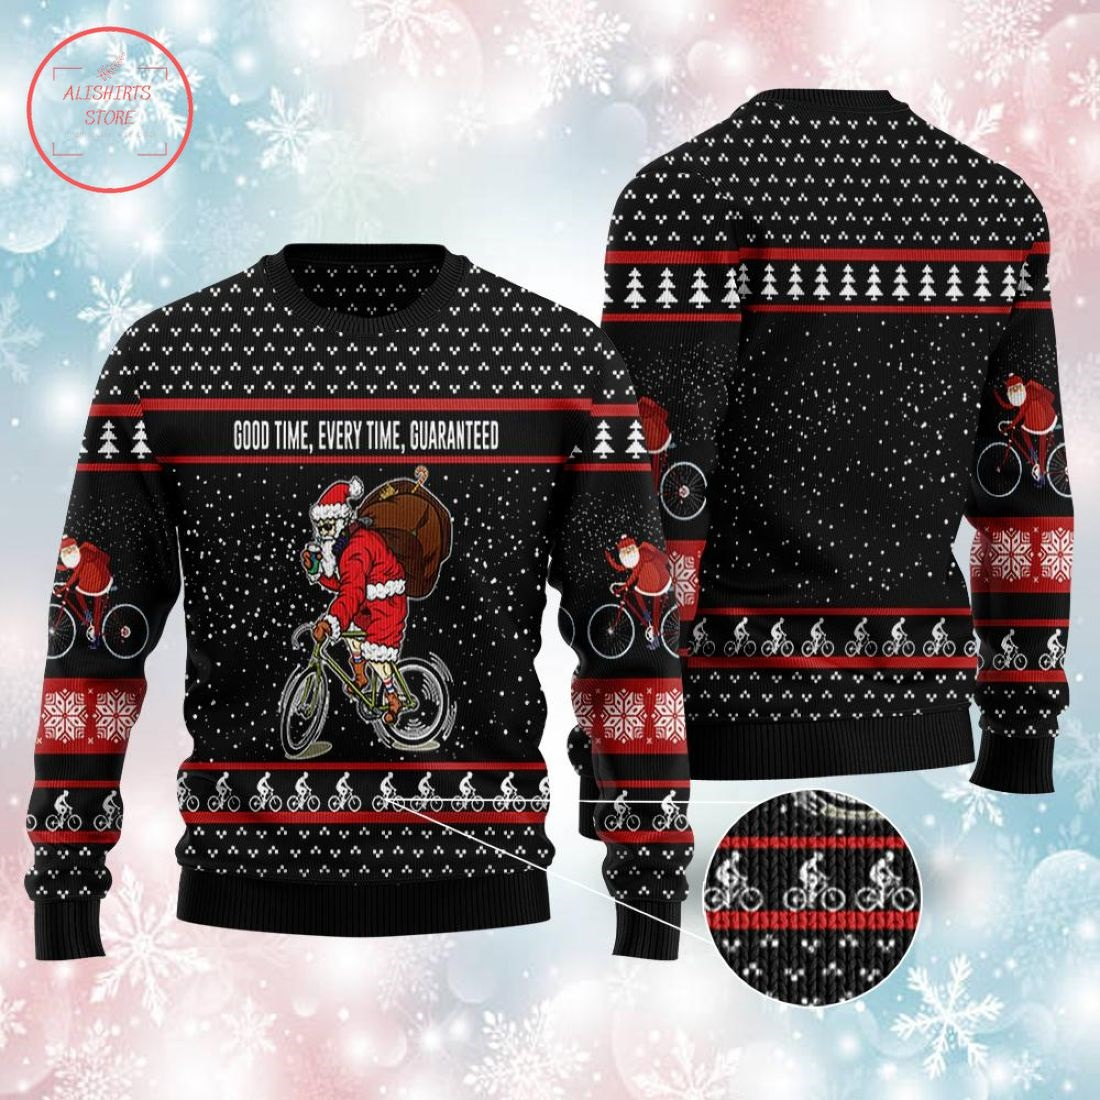 Good Time Every Time Guaranteed Santa Claus Ugly Christmas Sweater